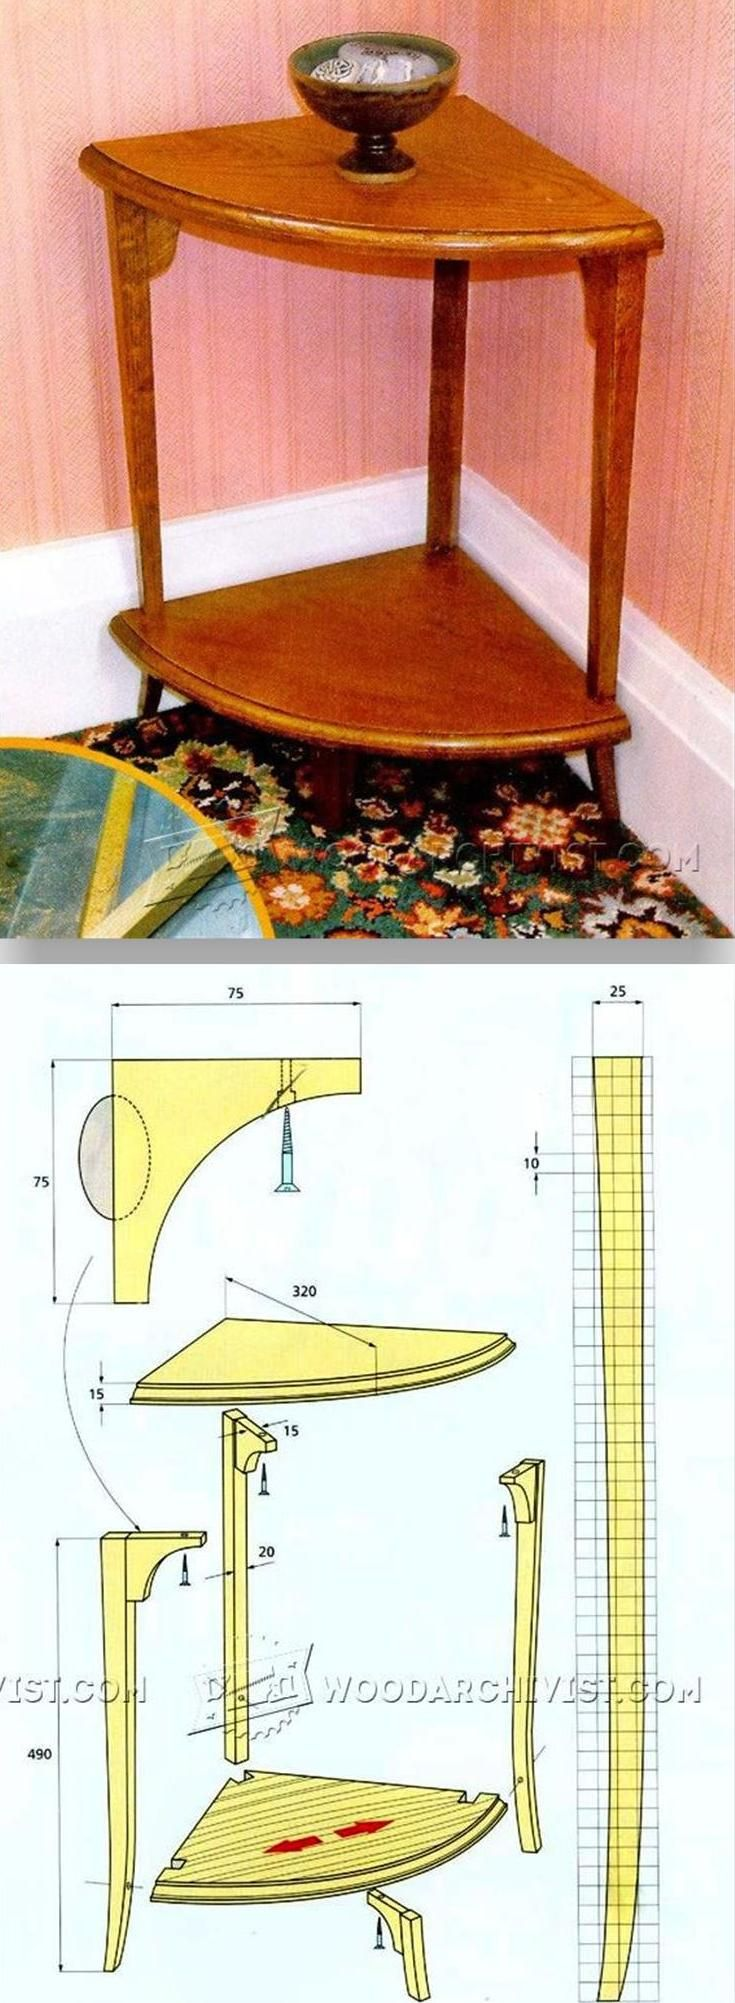 Corner Whatnot Plans - Furniture Plans and Projects | WoodArchivist.com